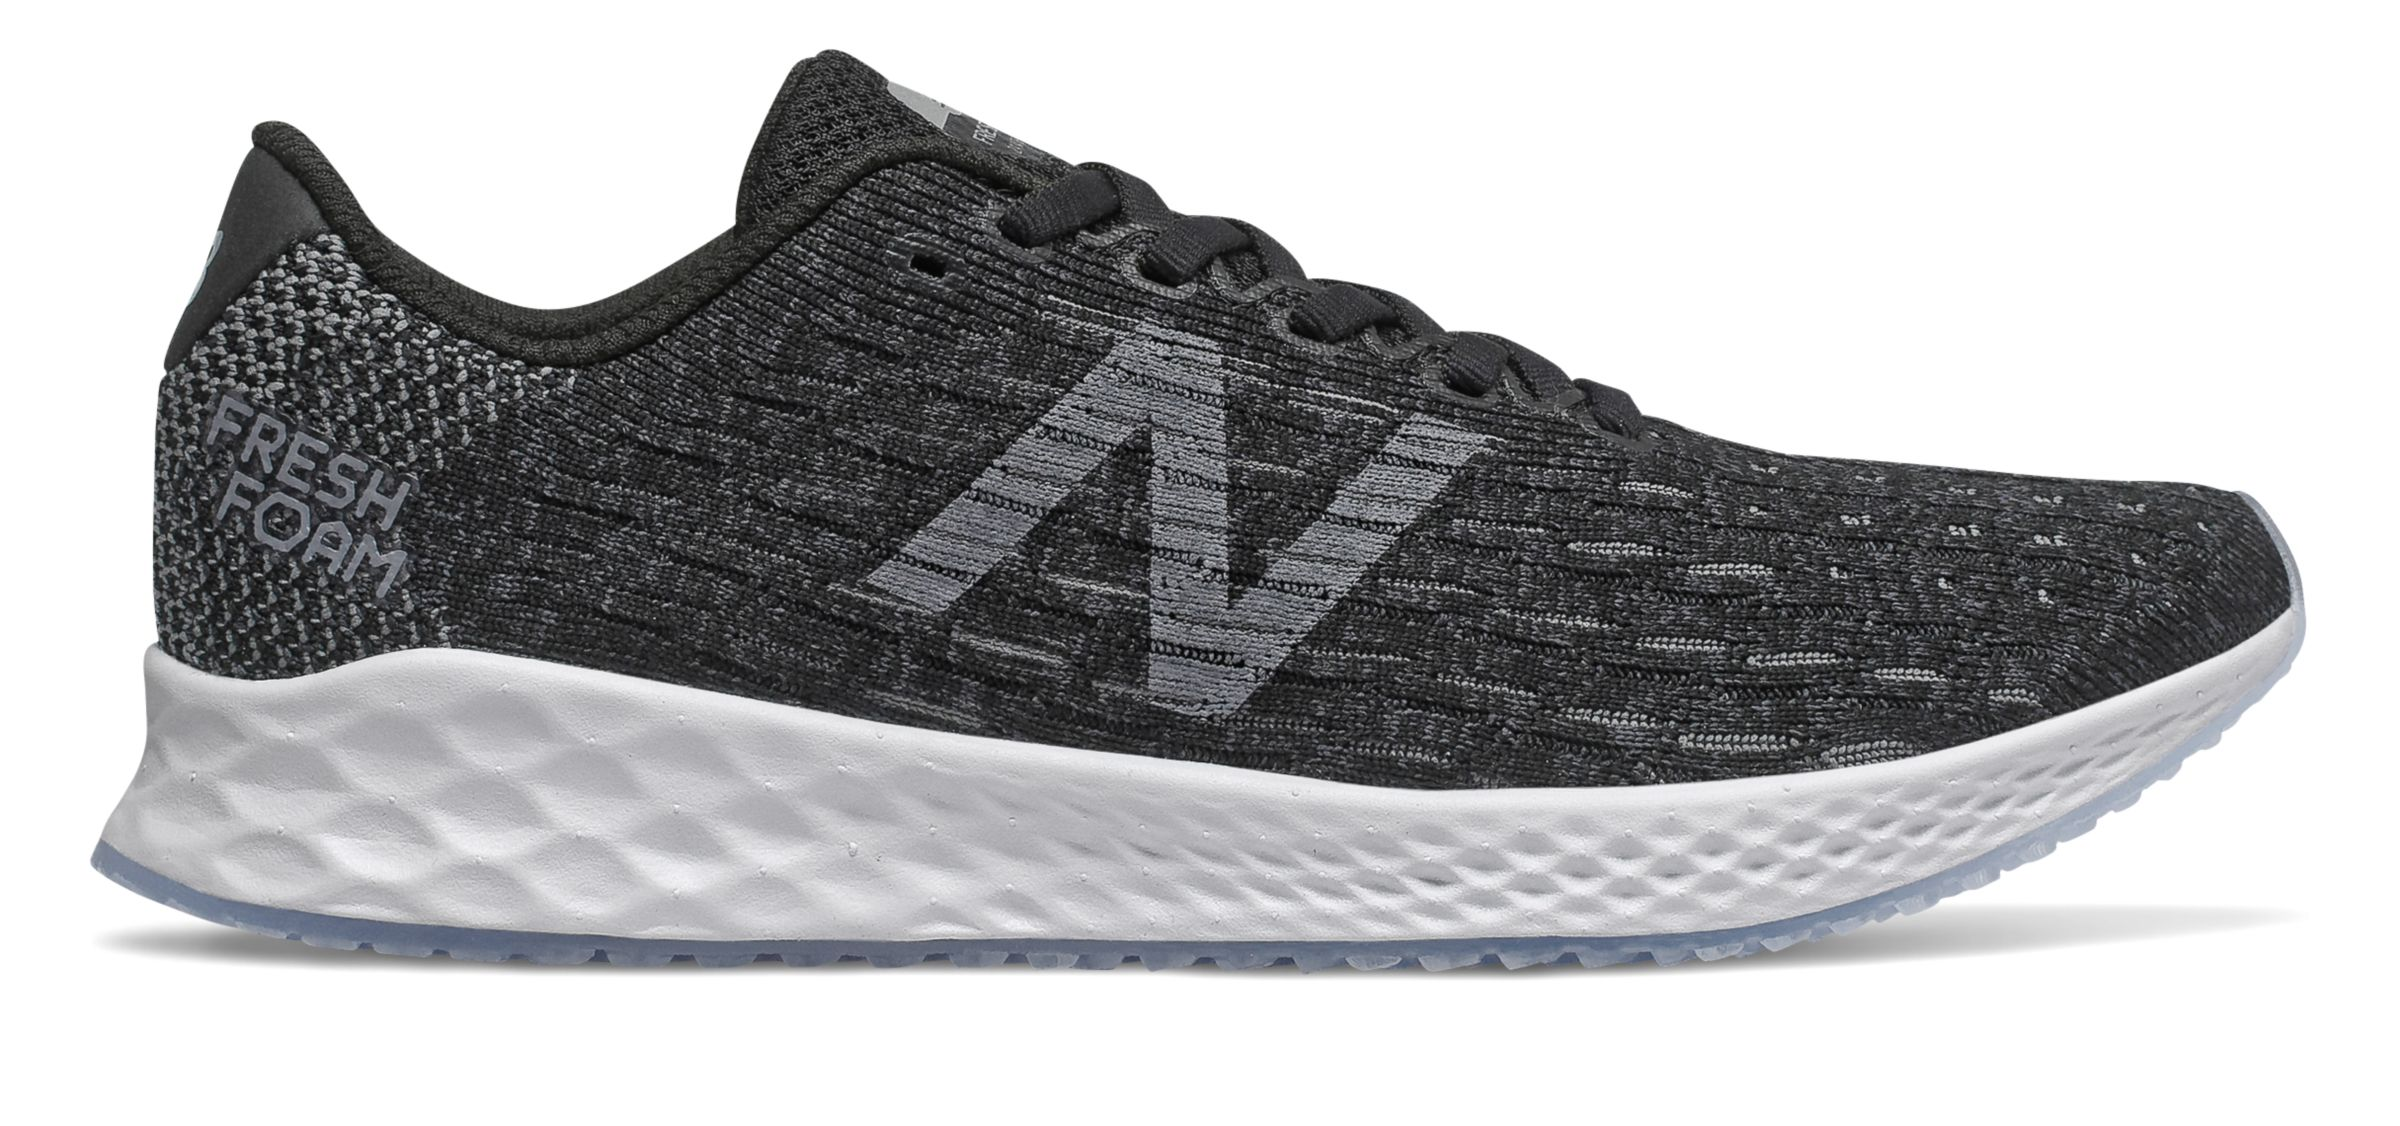 This sneaker is designed for real-life runners.